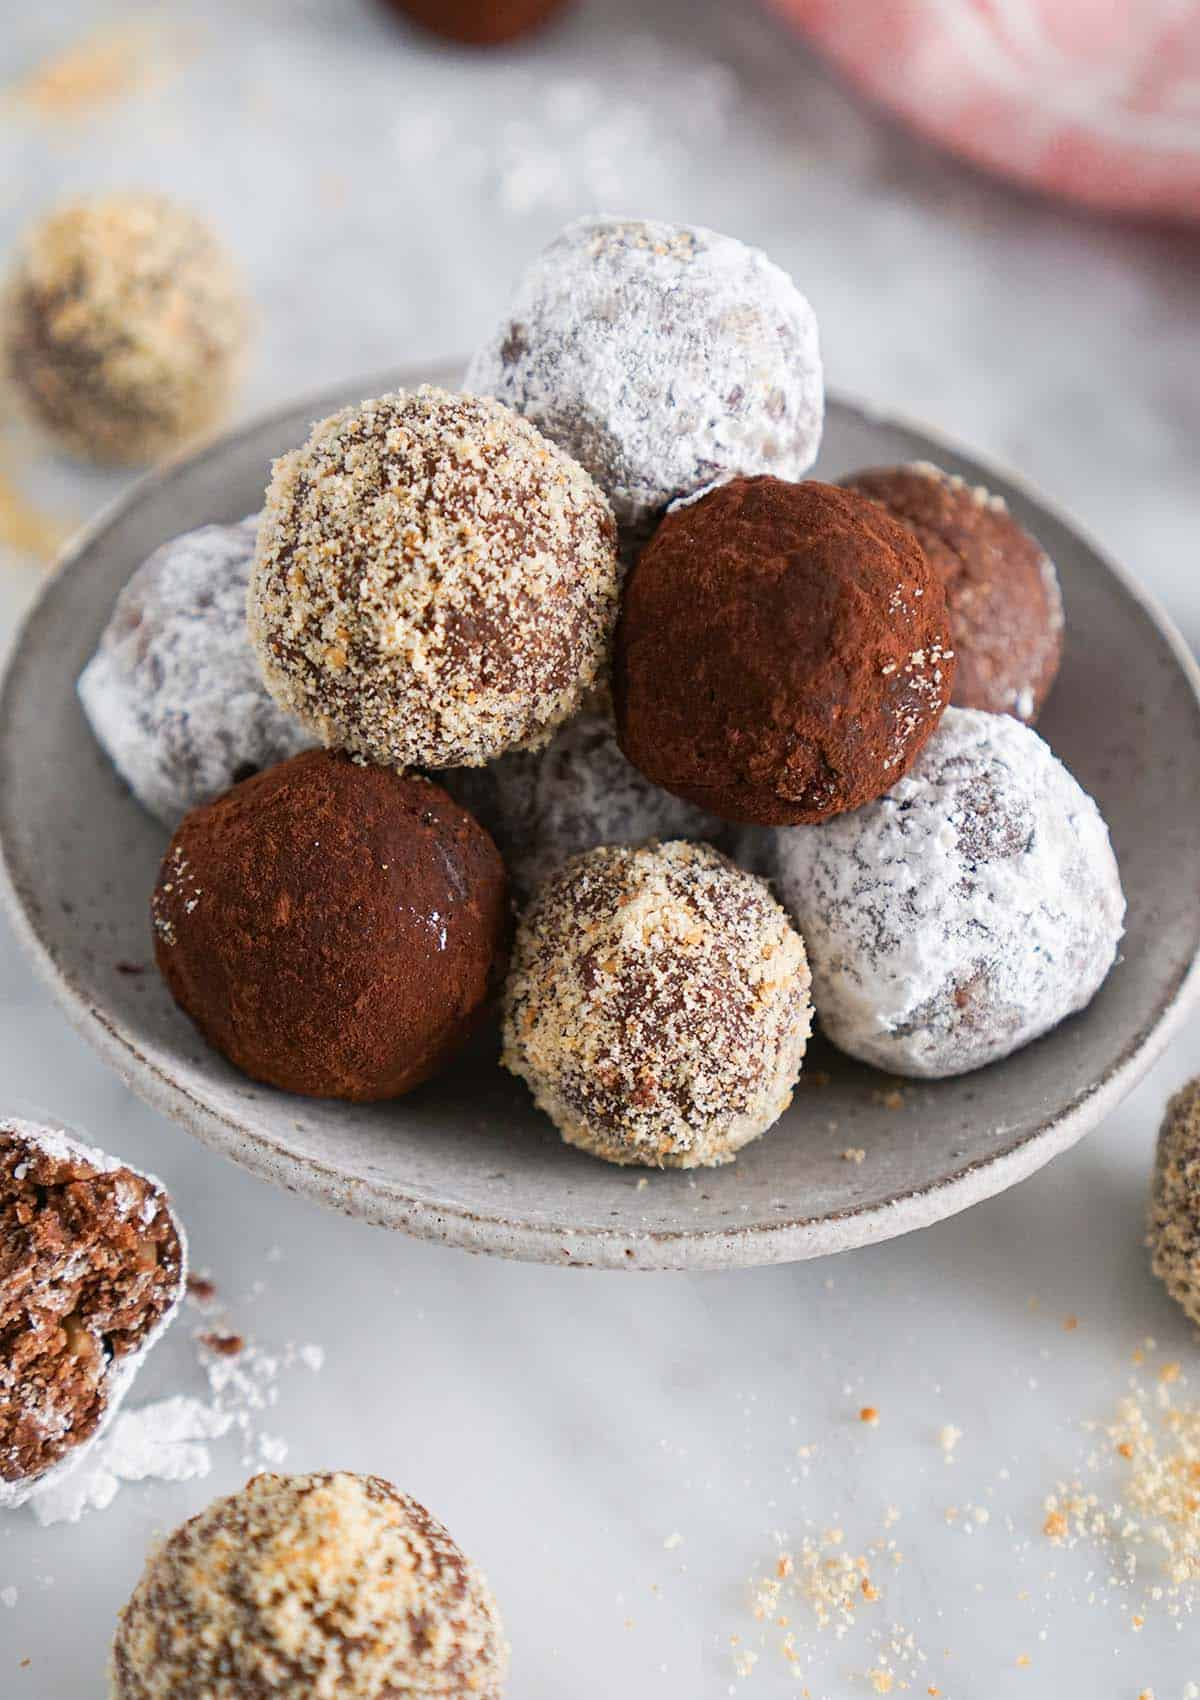 A pile of rum balls with different coverings on a marble surface.